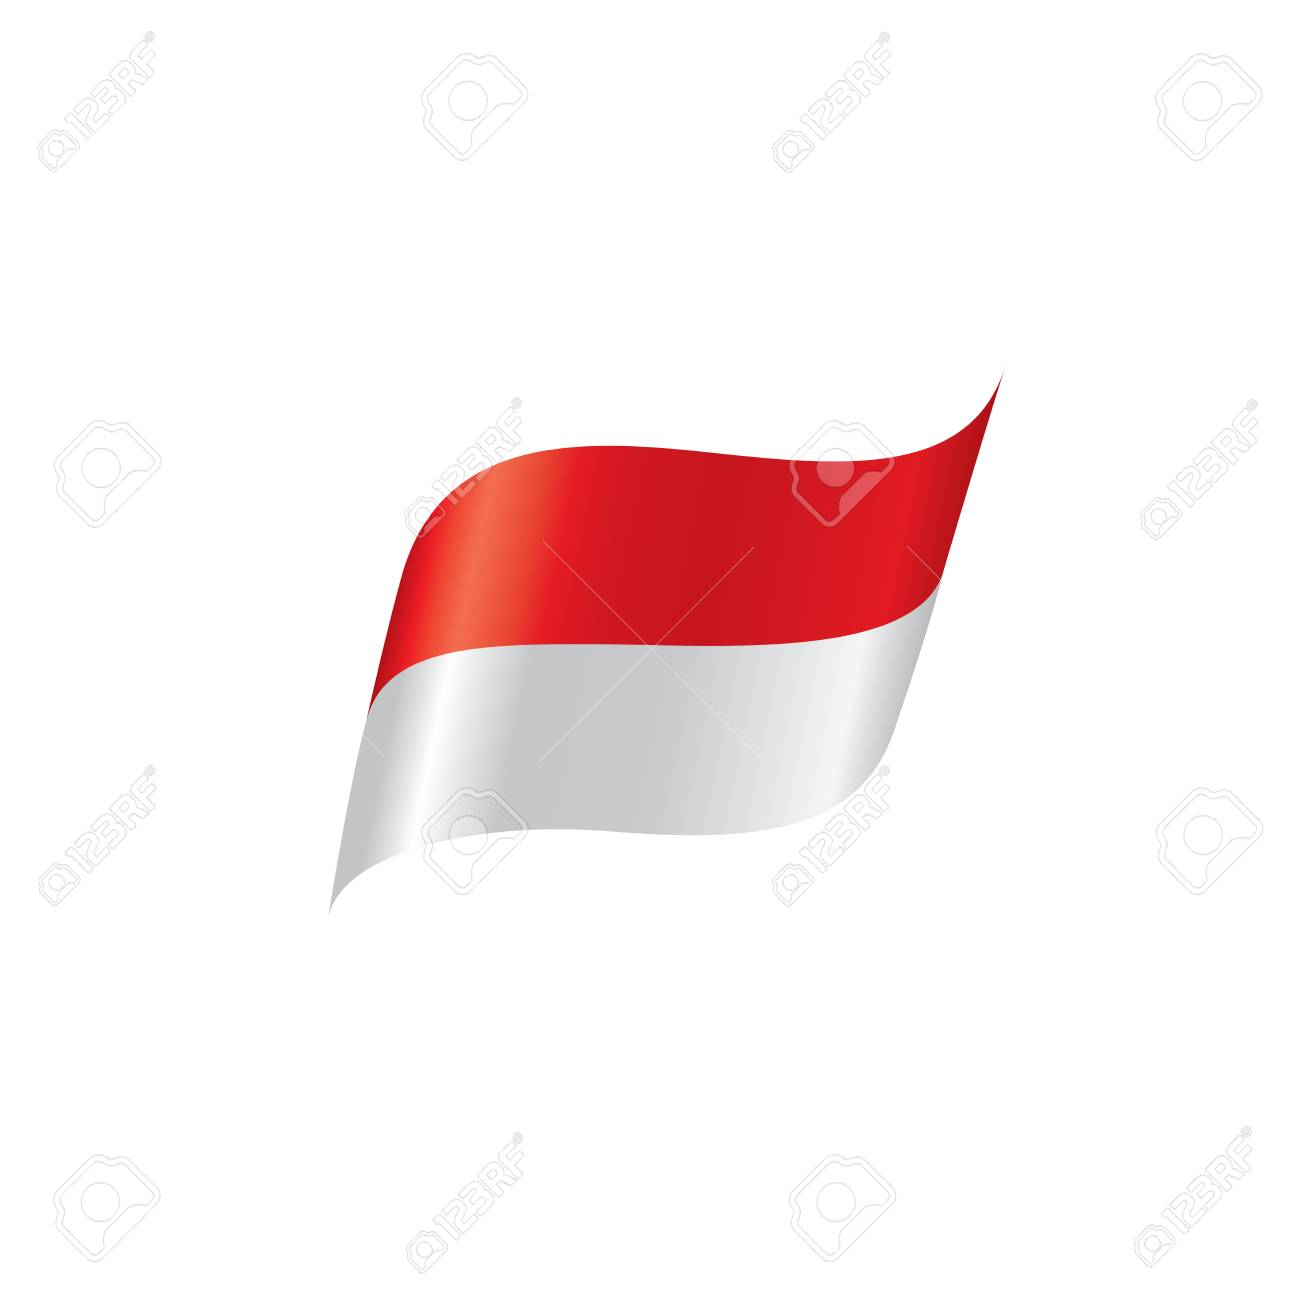 Indonesia flag, vector illustration on a white background. - 92804936